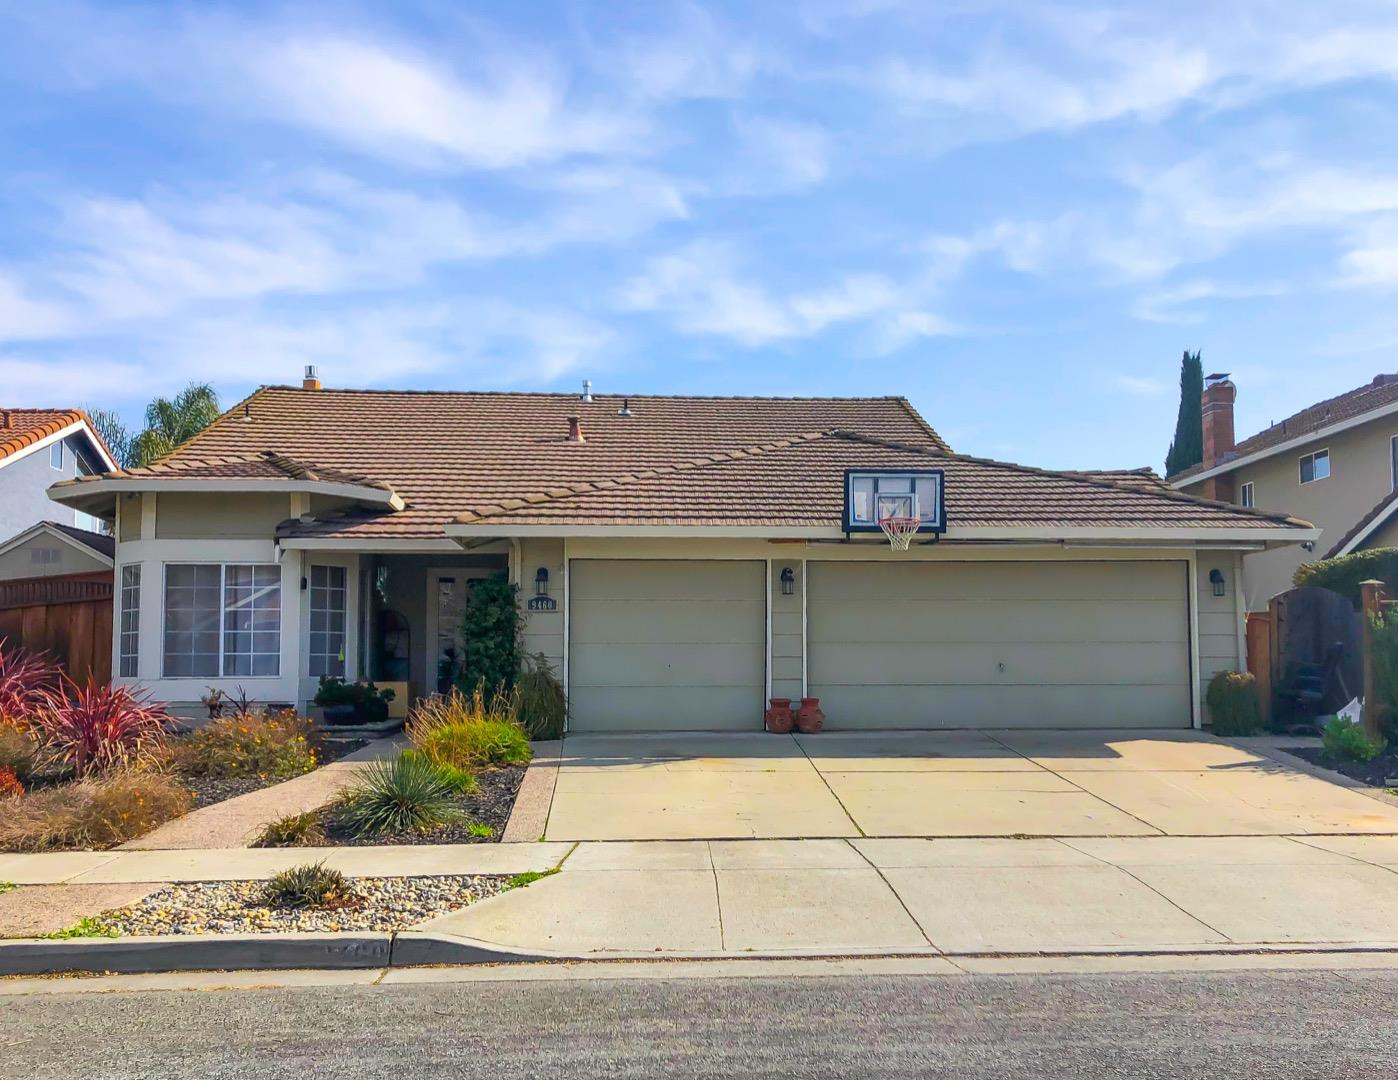 9460 EAGLE VIEW WAY, GILROY, CA 95020